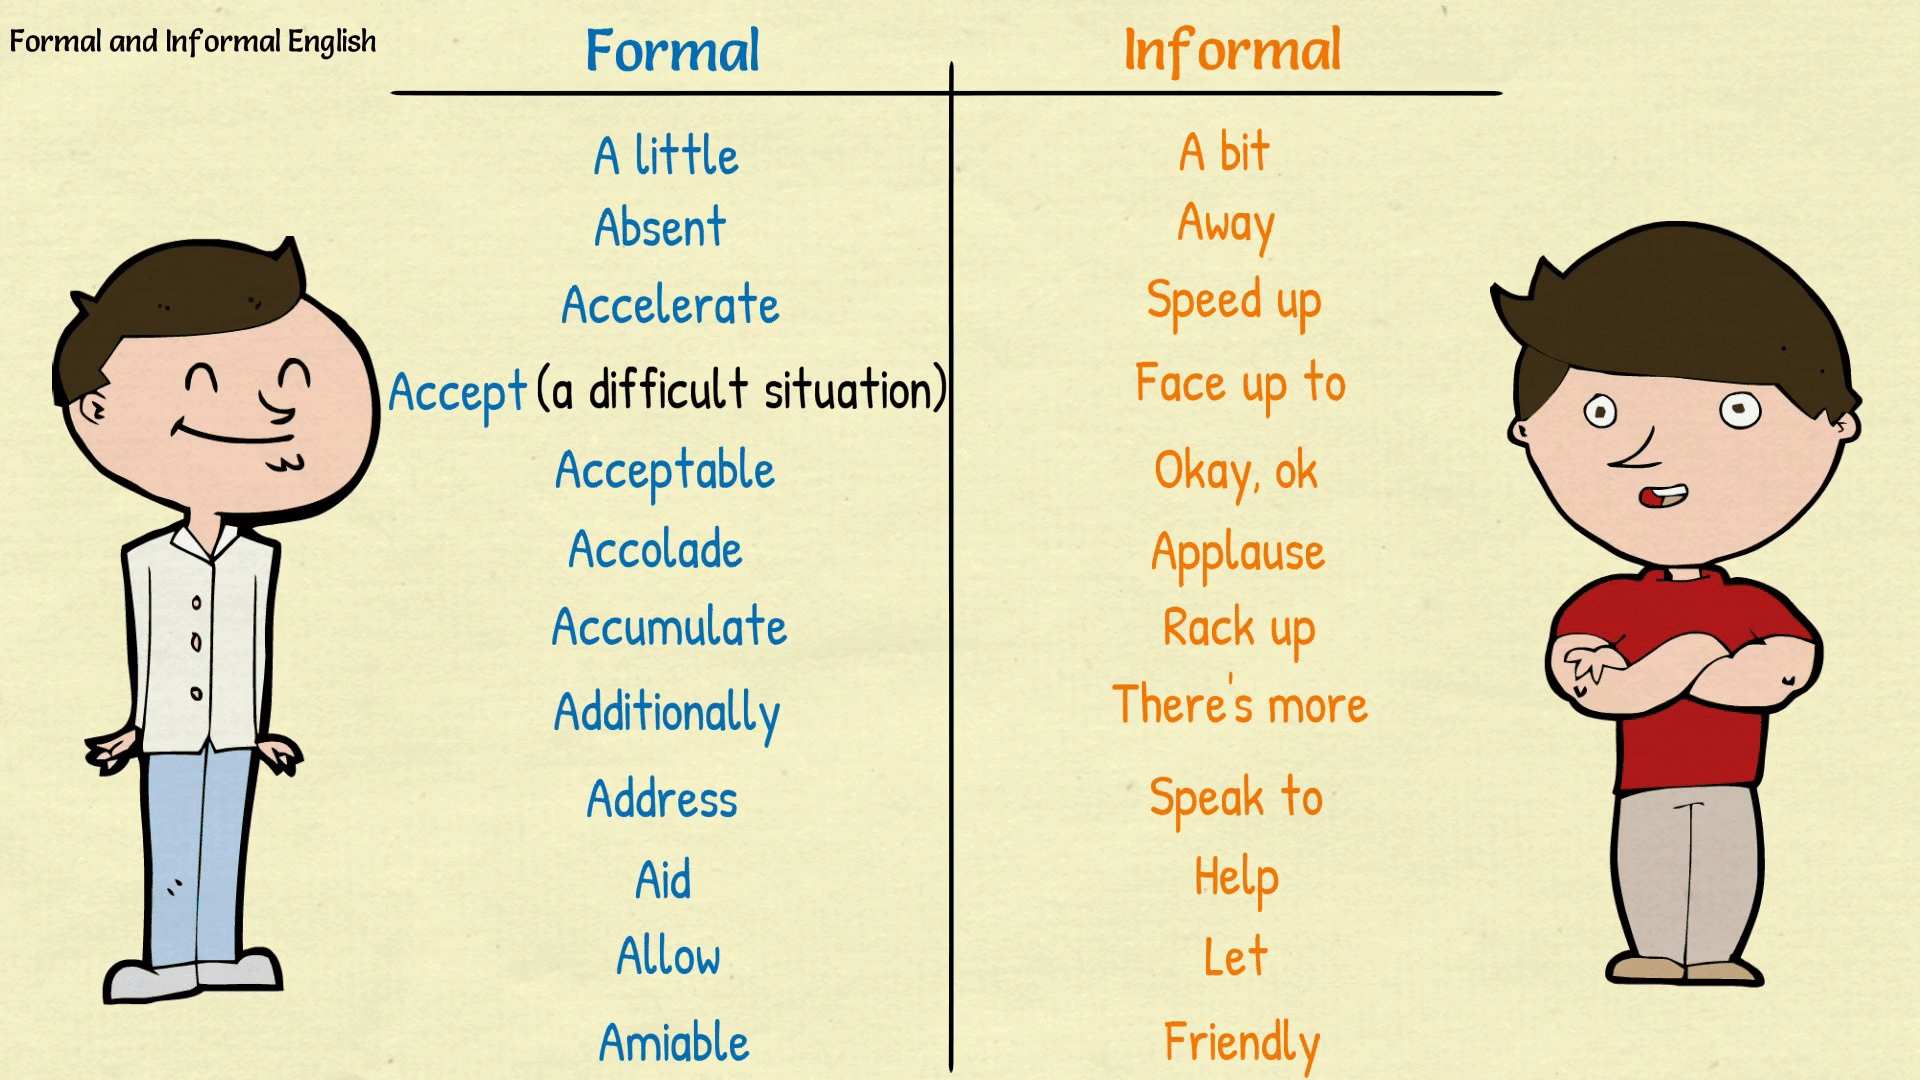 Formal and Informal English Words